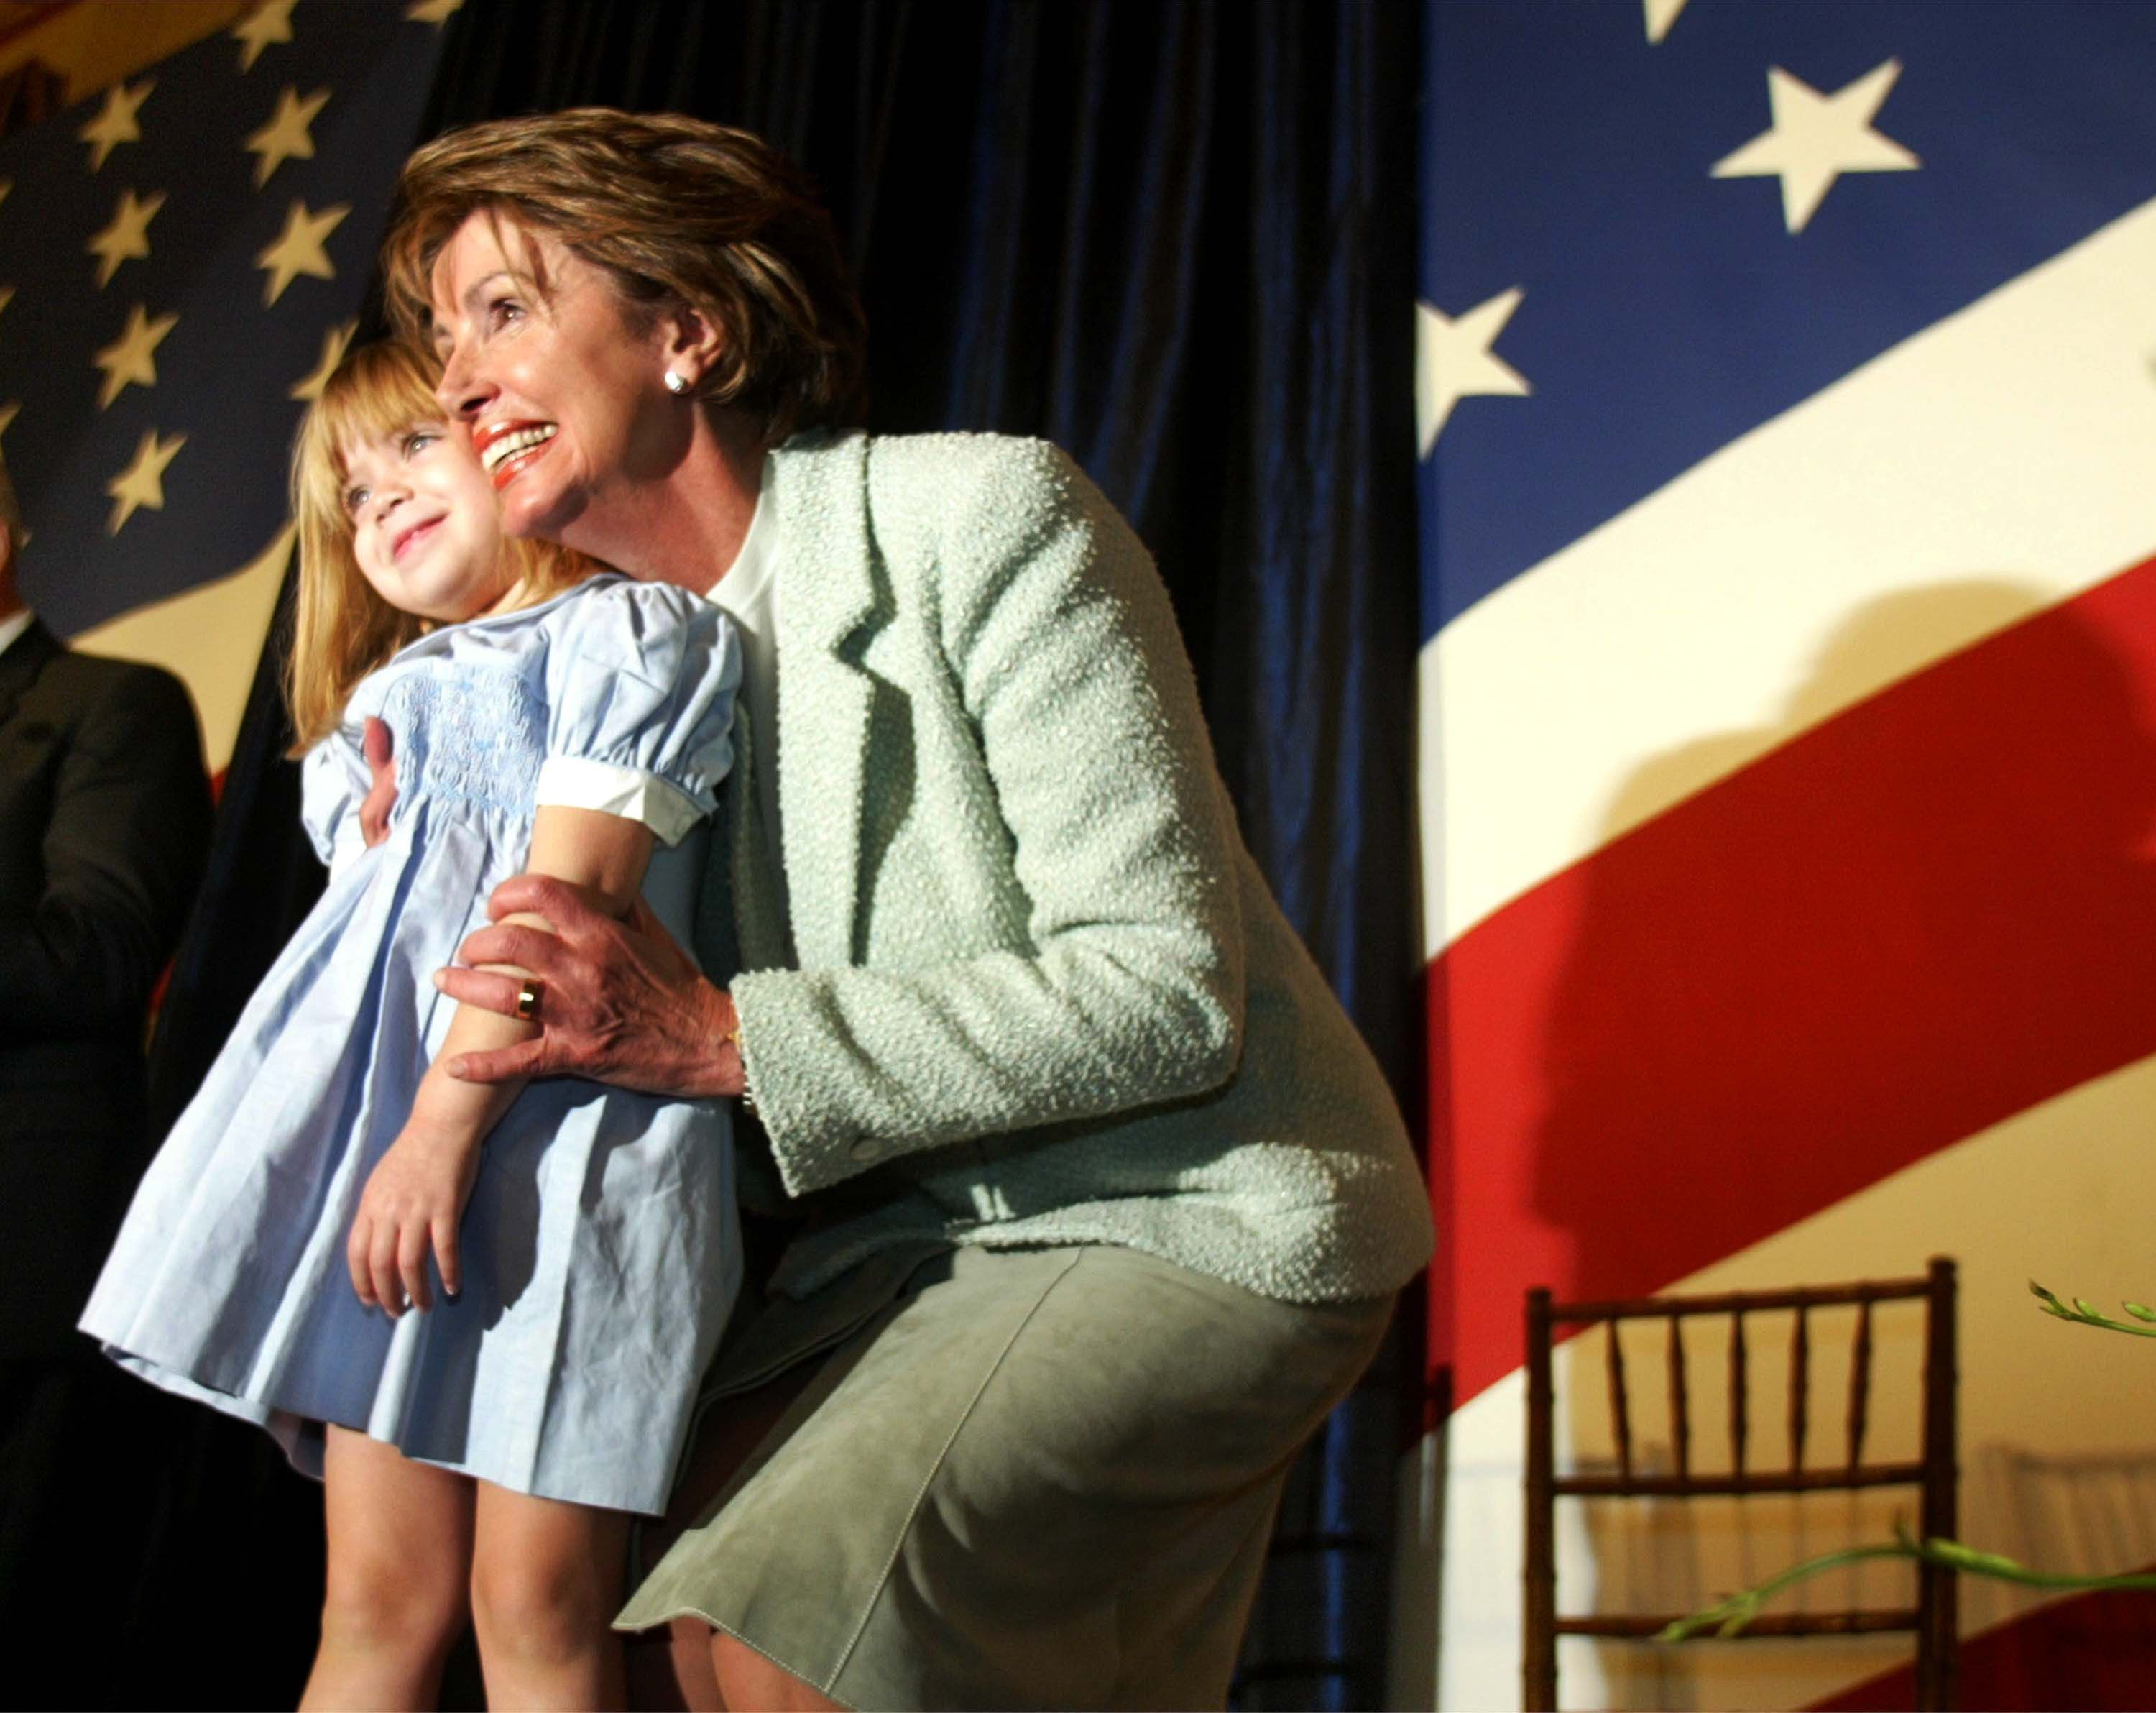 Pelosi hugs her granddaughter at the swearing in ceremony.